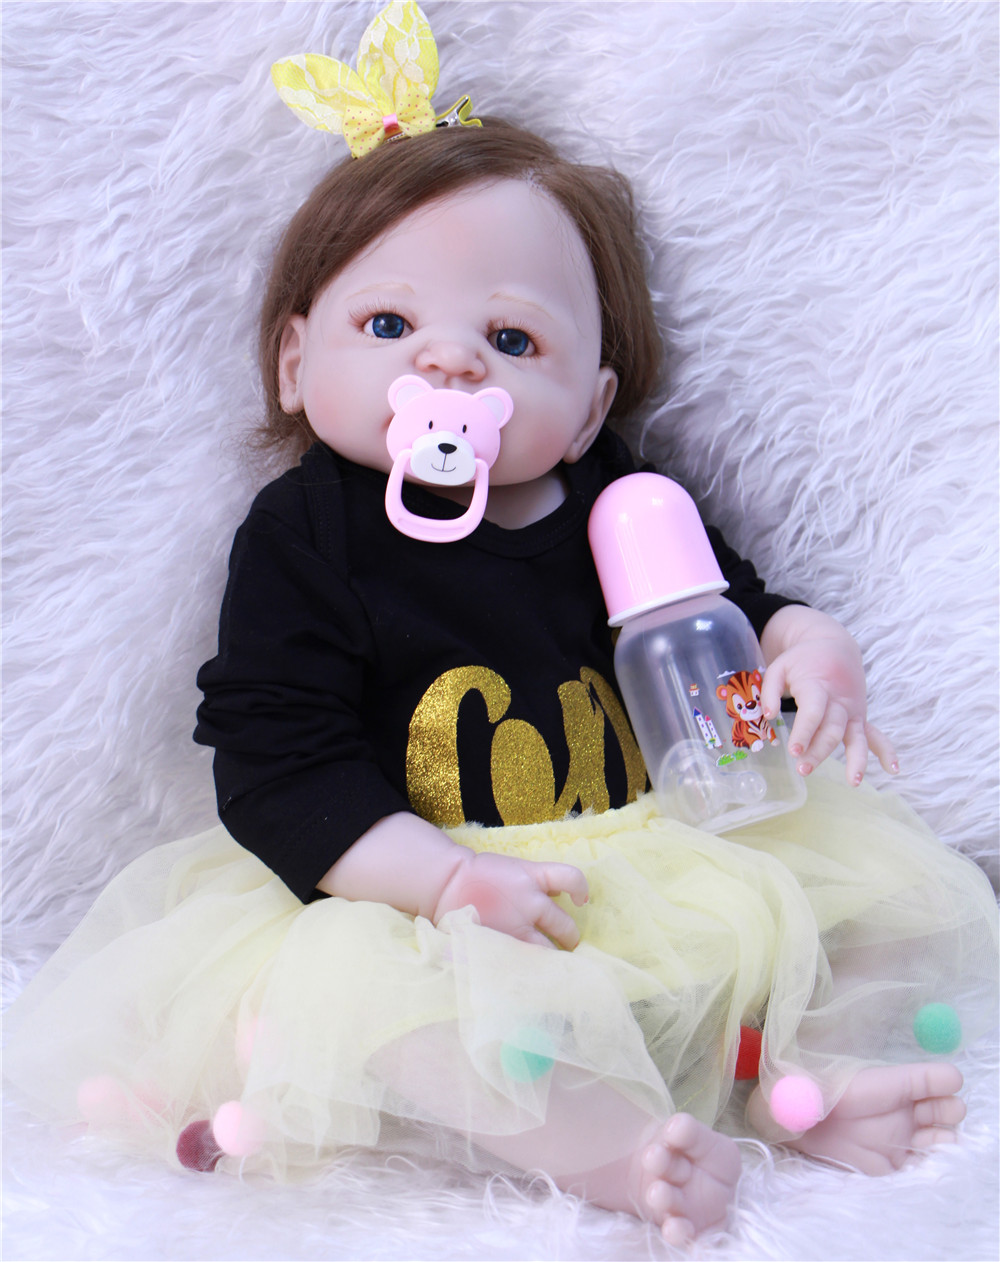 23bebes reborn girl princess dolls NPK full body silicone dolls reborn rooted hair magnetic mouth bonecas brinquedos23bebes reborn girl princess dolls NPK full body silicone dolls reborn rooted hair magnetic mouth bonecas brinquedos